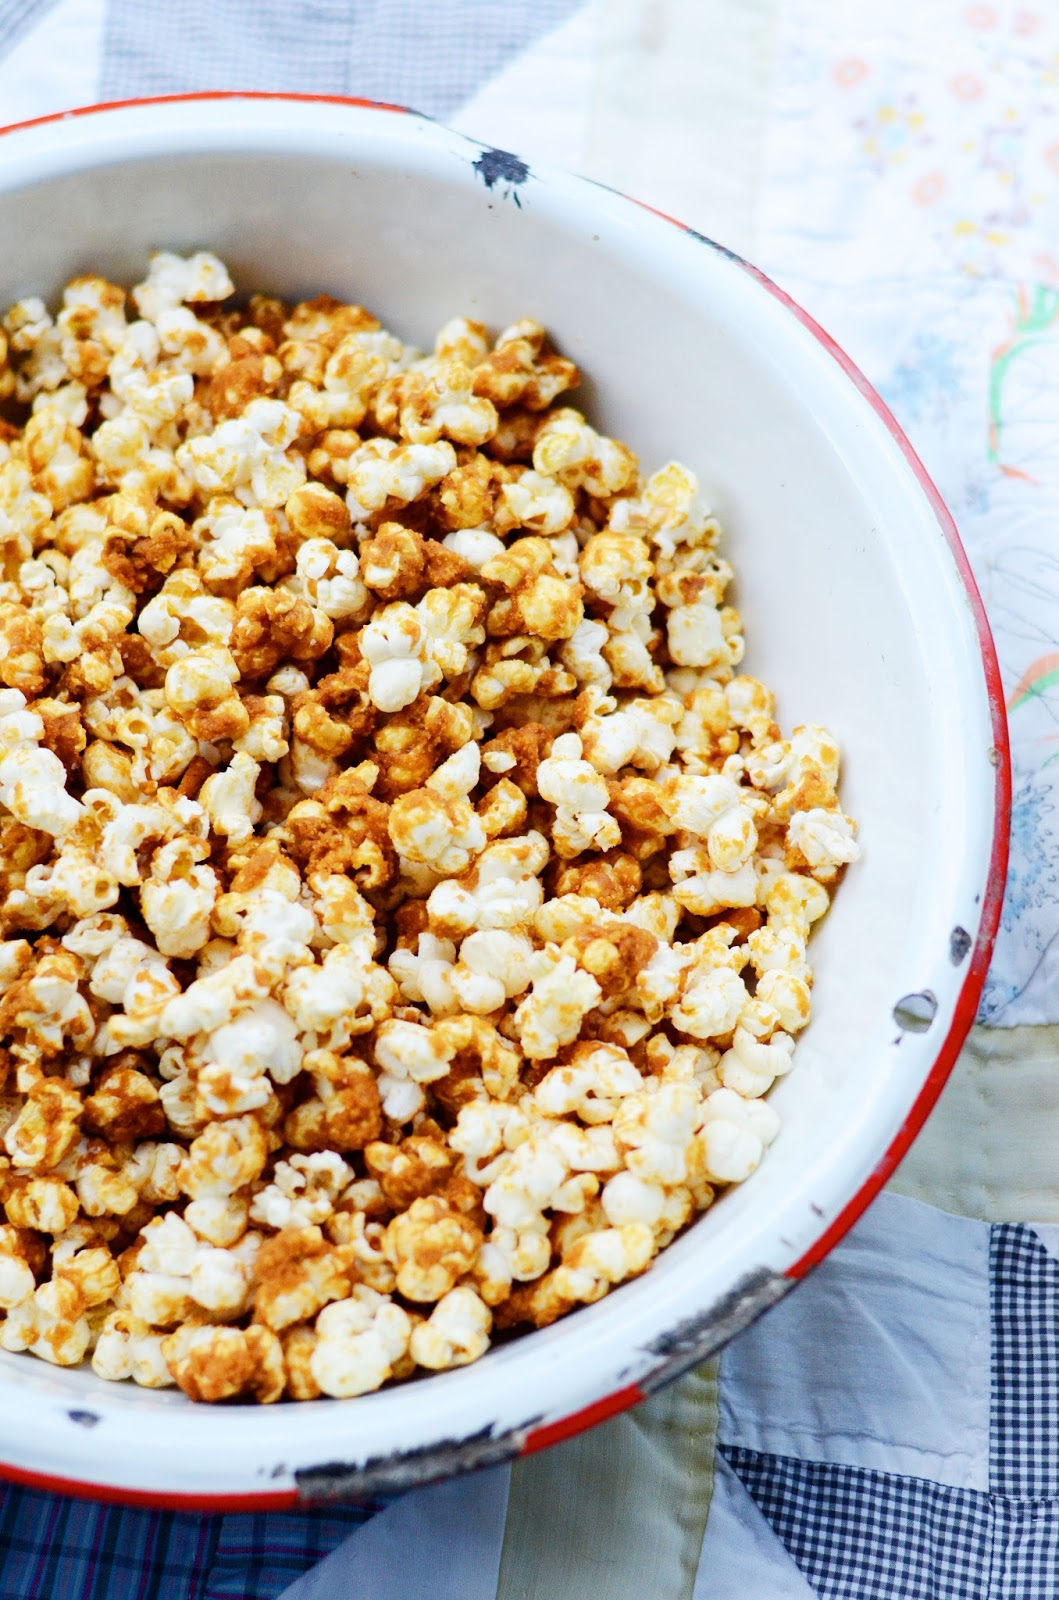 I Was Craving Popcorn So We Brought Along A Big Bowl Of Sea Salt Caramel This Is My Go To Recipe Friends Well Be Making It Many More Times